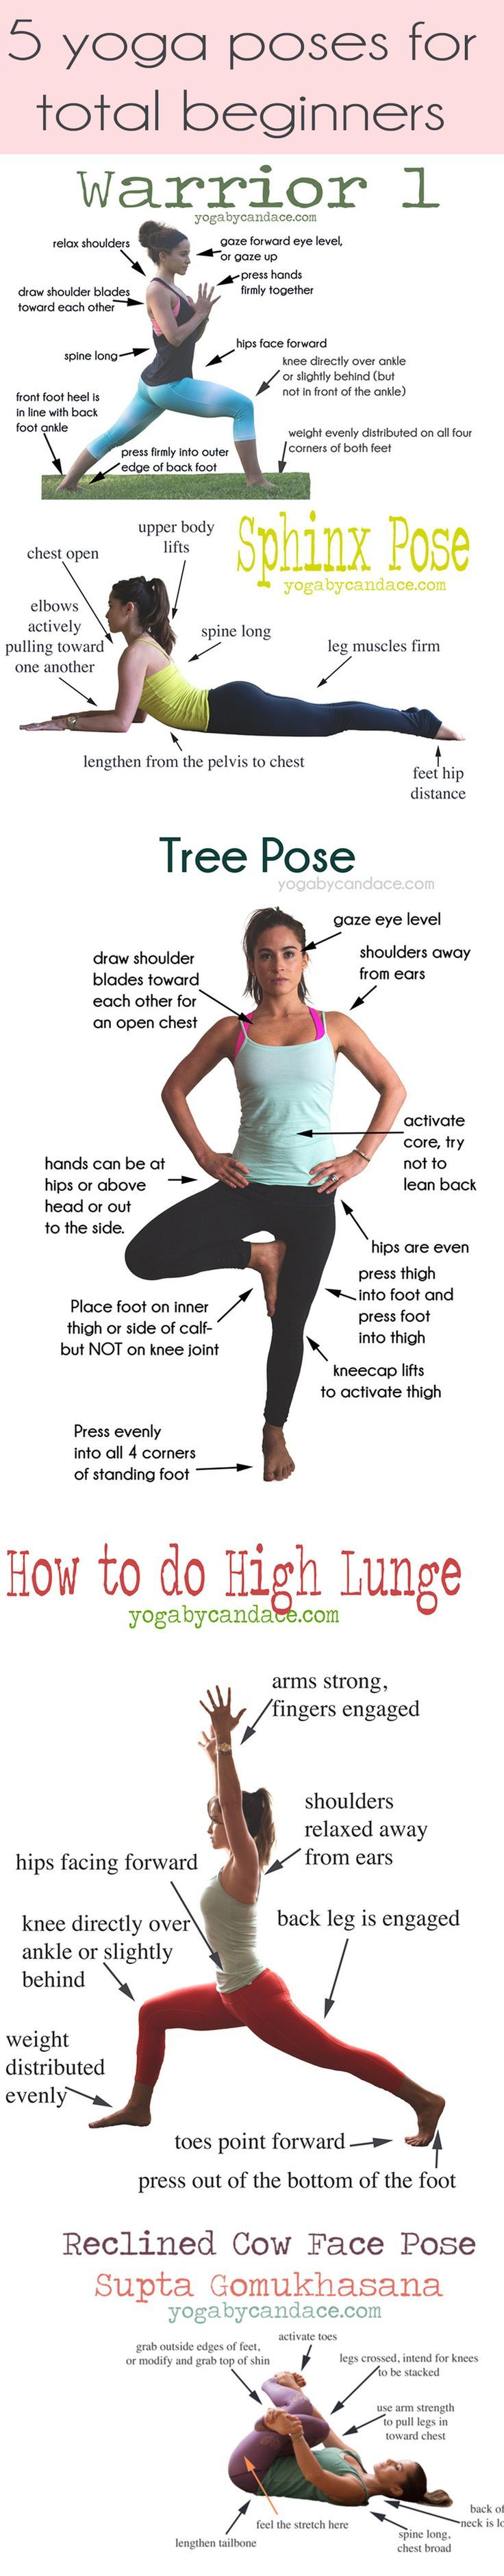 Pin now, practice later! 5 yoga poses for total beginners. Come chat on the foru...